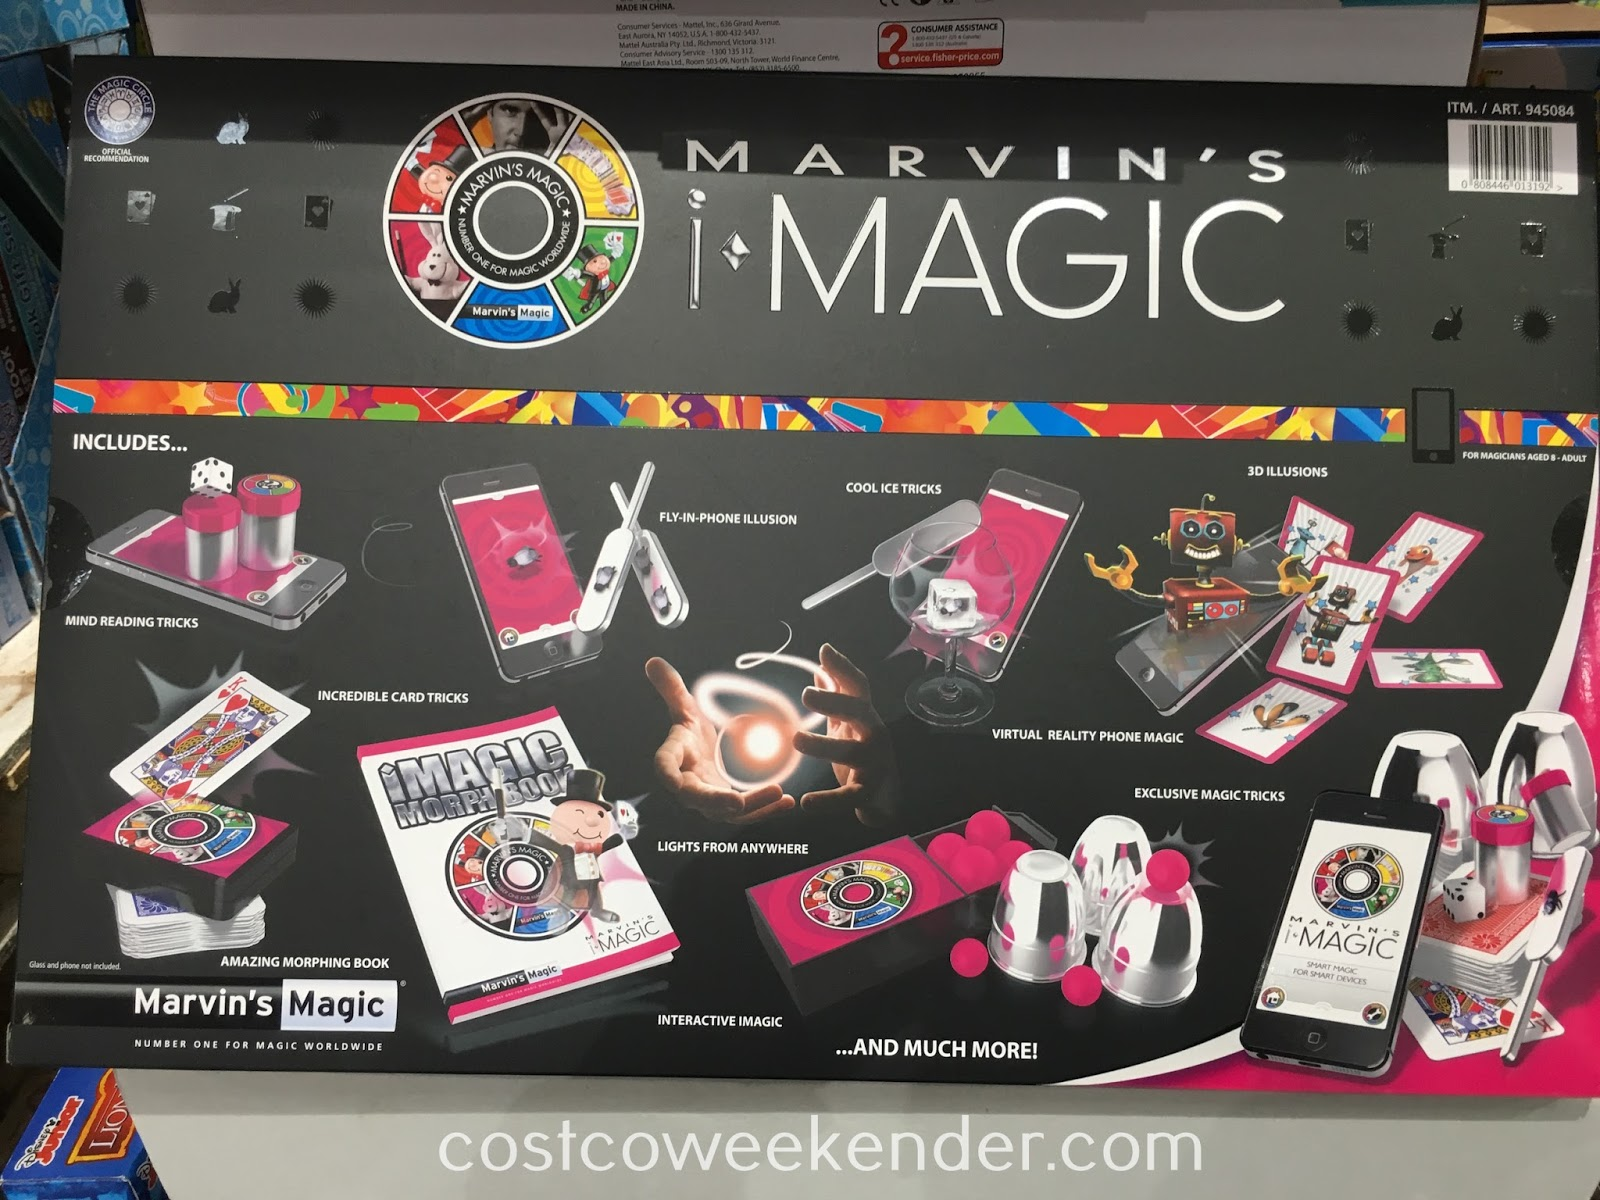 Costco 945084 - Marvin's Magic Master of Illusion iMagic Set - great for kids